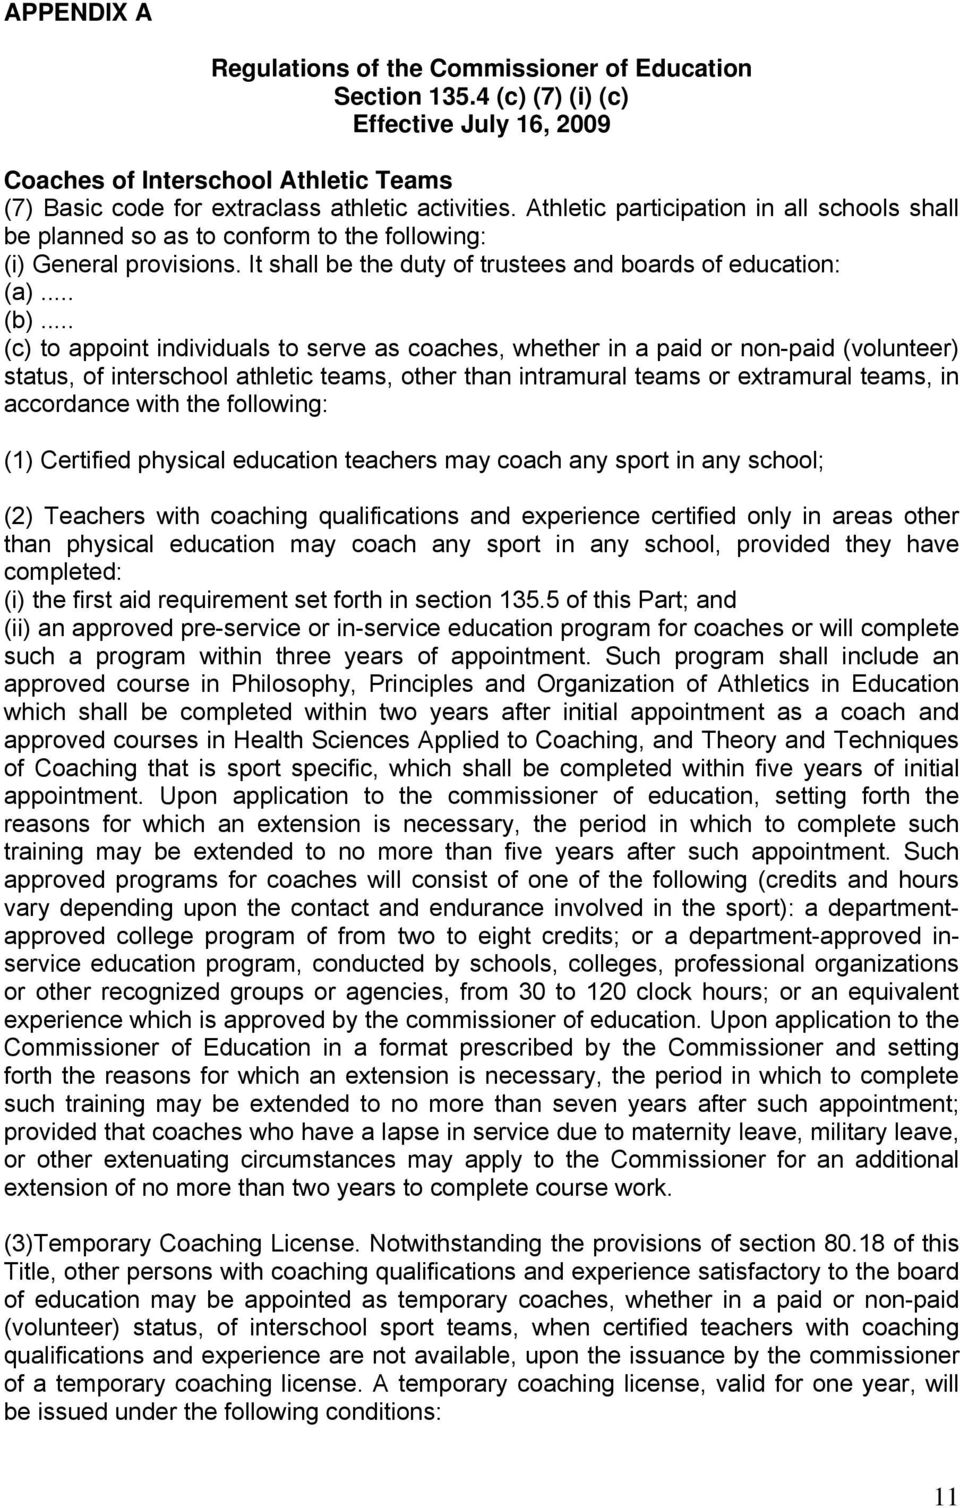 .. (c) to appoint individuals to serve as coaches, whether in a paid or non-paid (volunteer) status, of interschool athletic teams, other than intramural teams or extramural teams, in accordance with